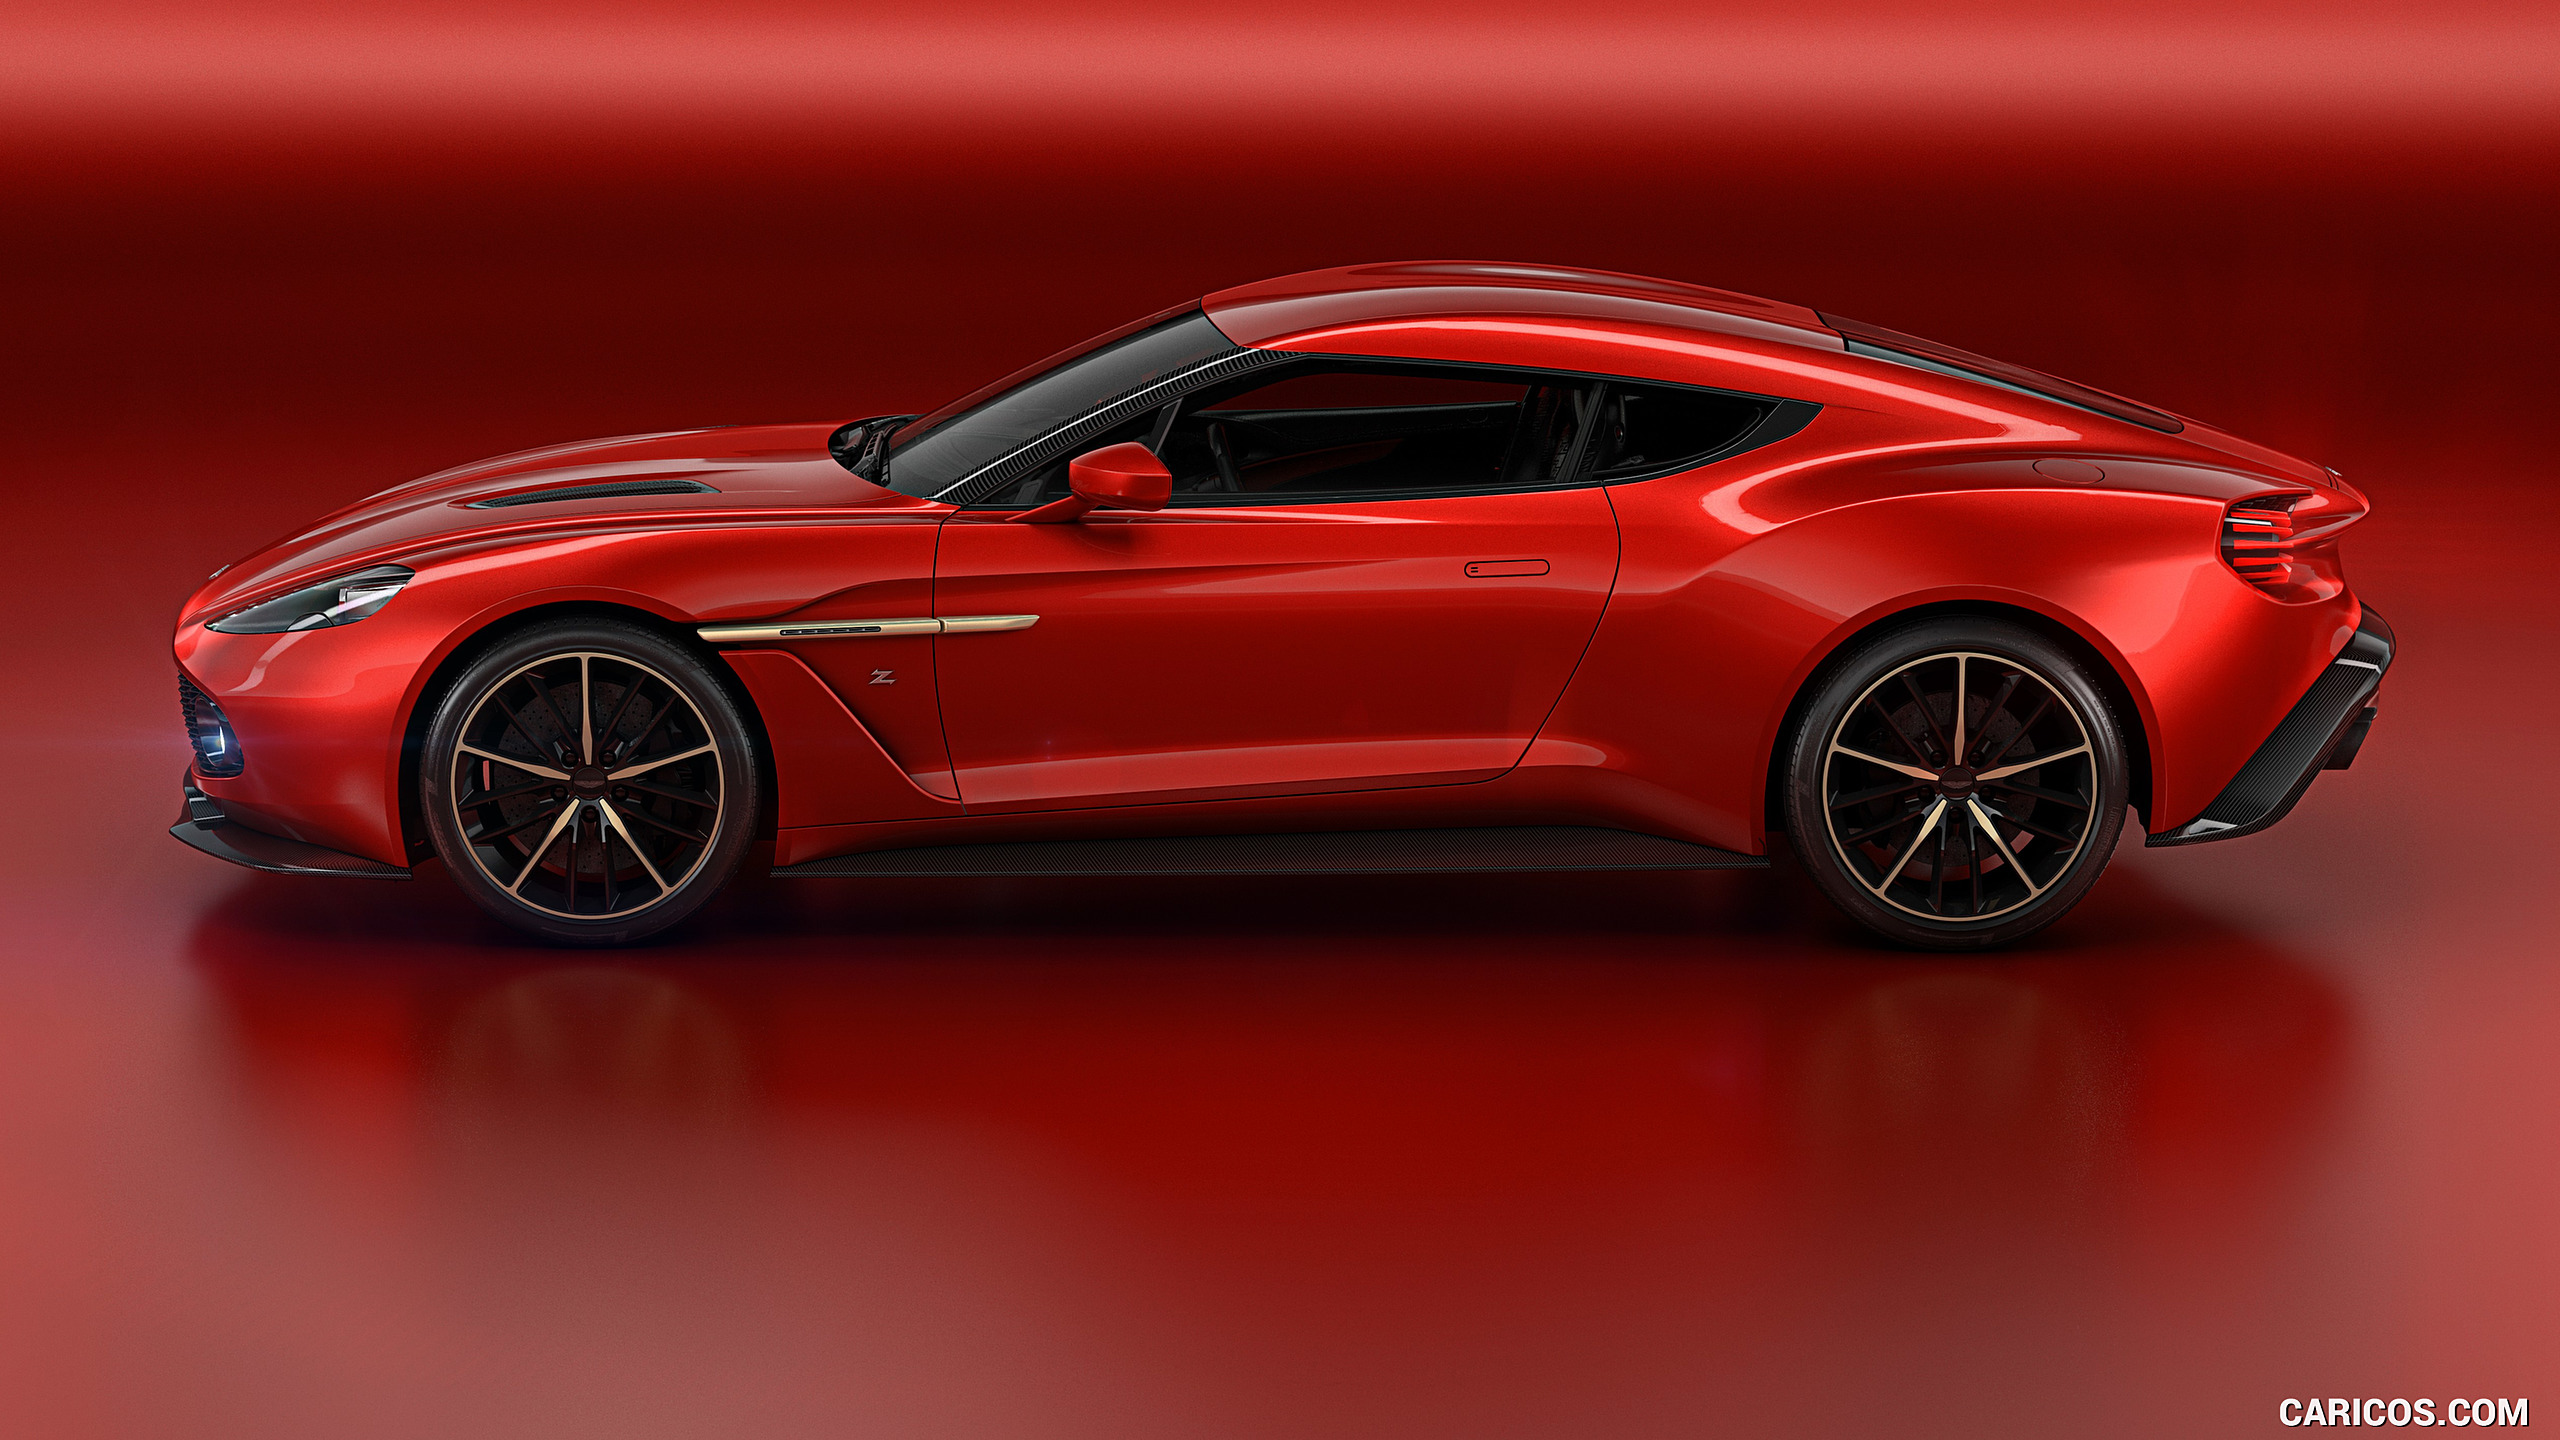 2016 Aston Martin Vanquish Zagato Concept   Side HD Wallpaper 5 2560x1440